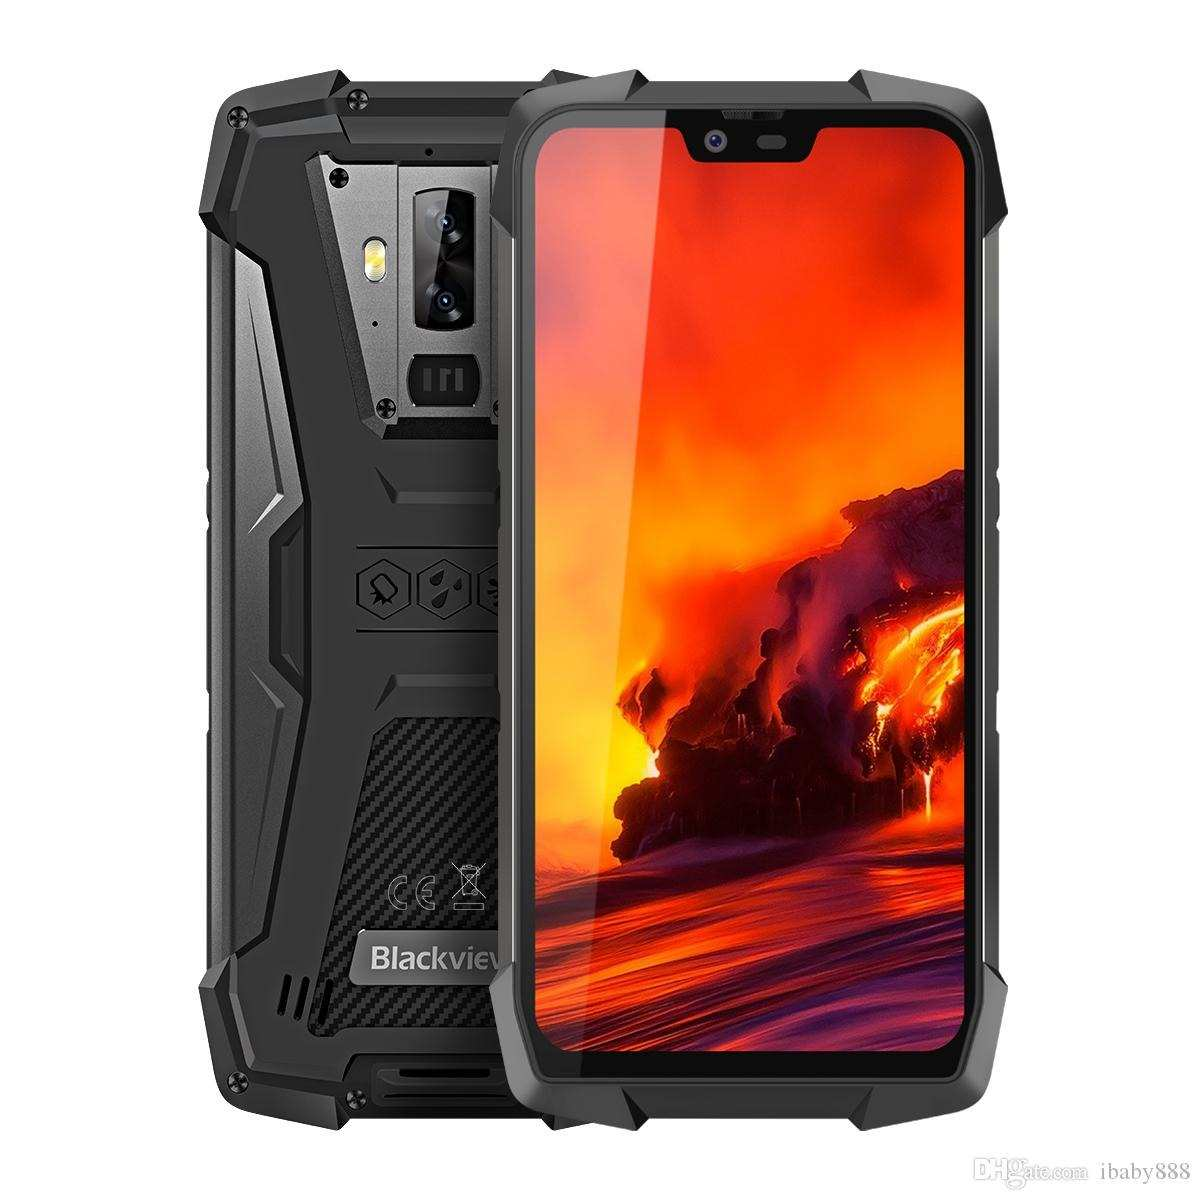 Blackview BV9700 Pro 6GB 128GB DHgate Coupon Promo Code